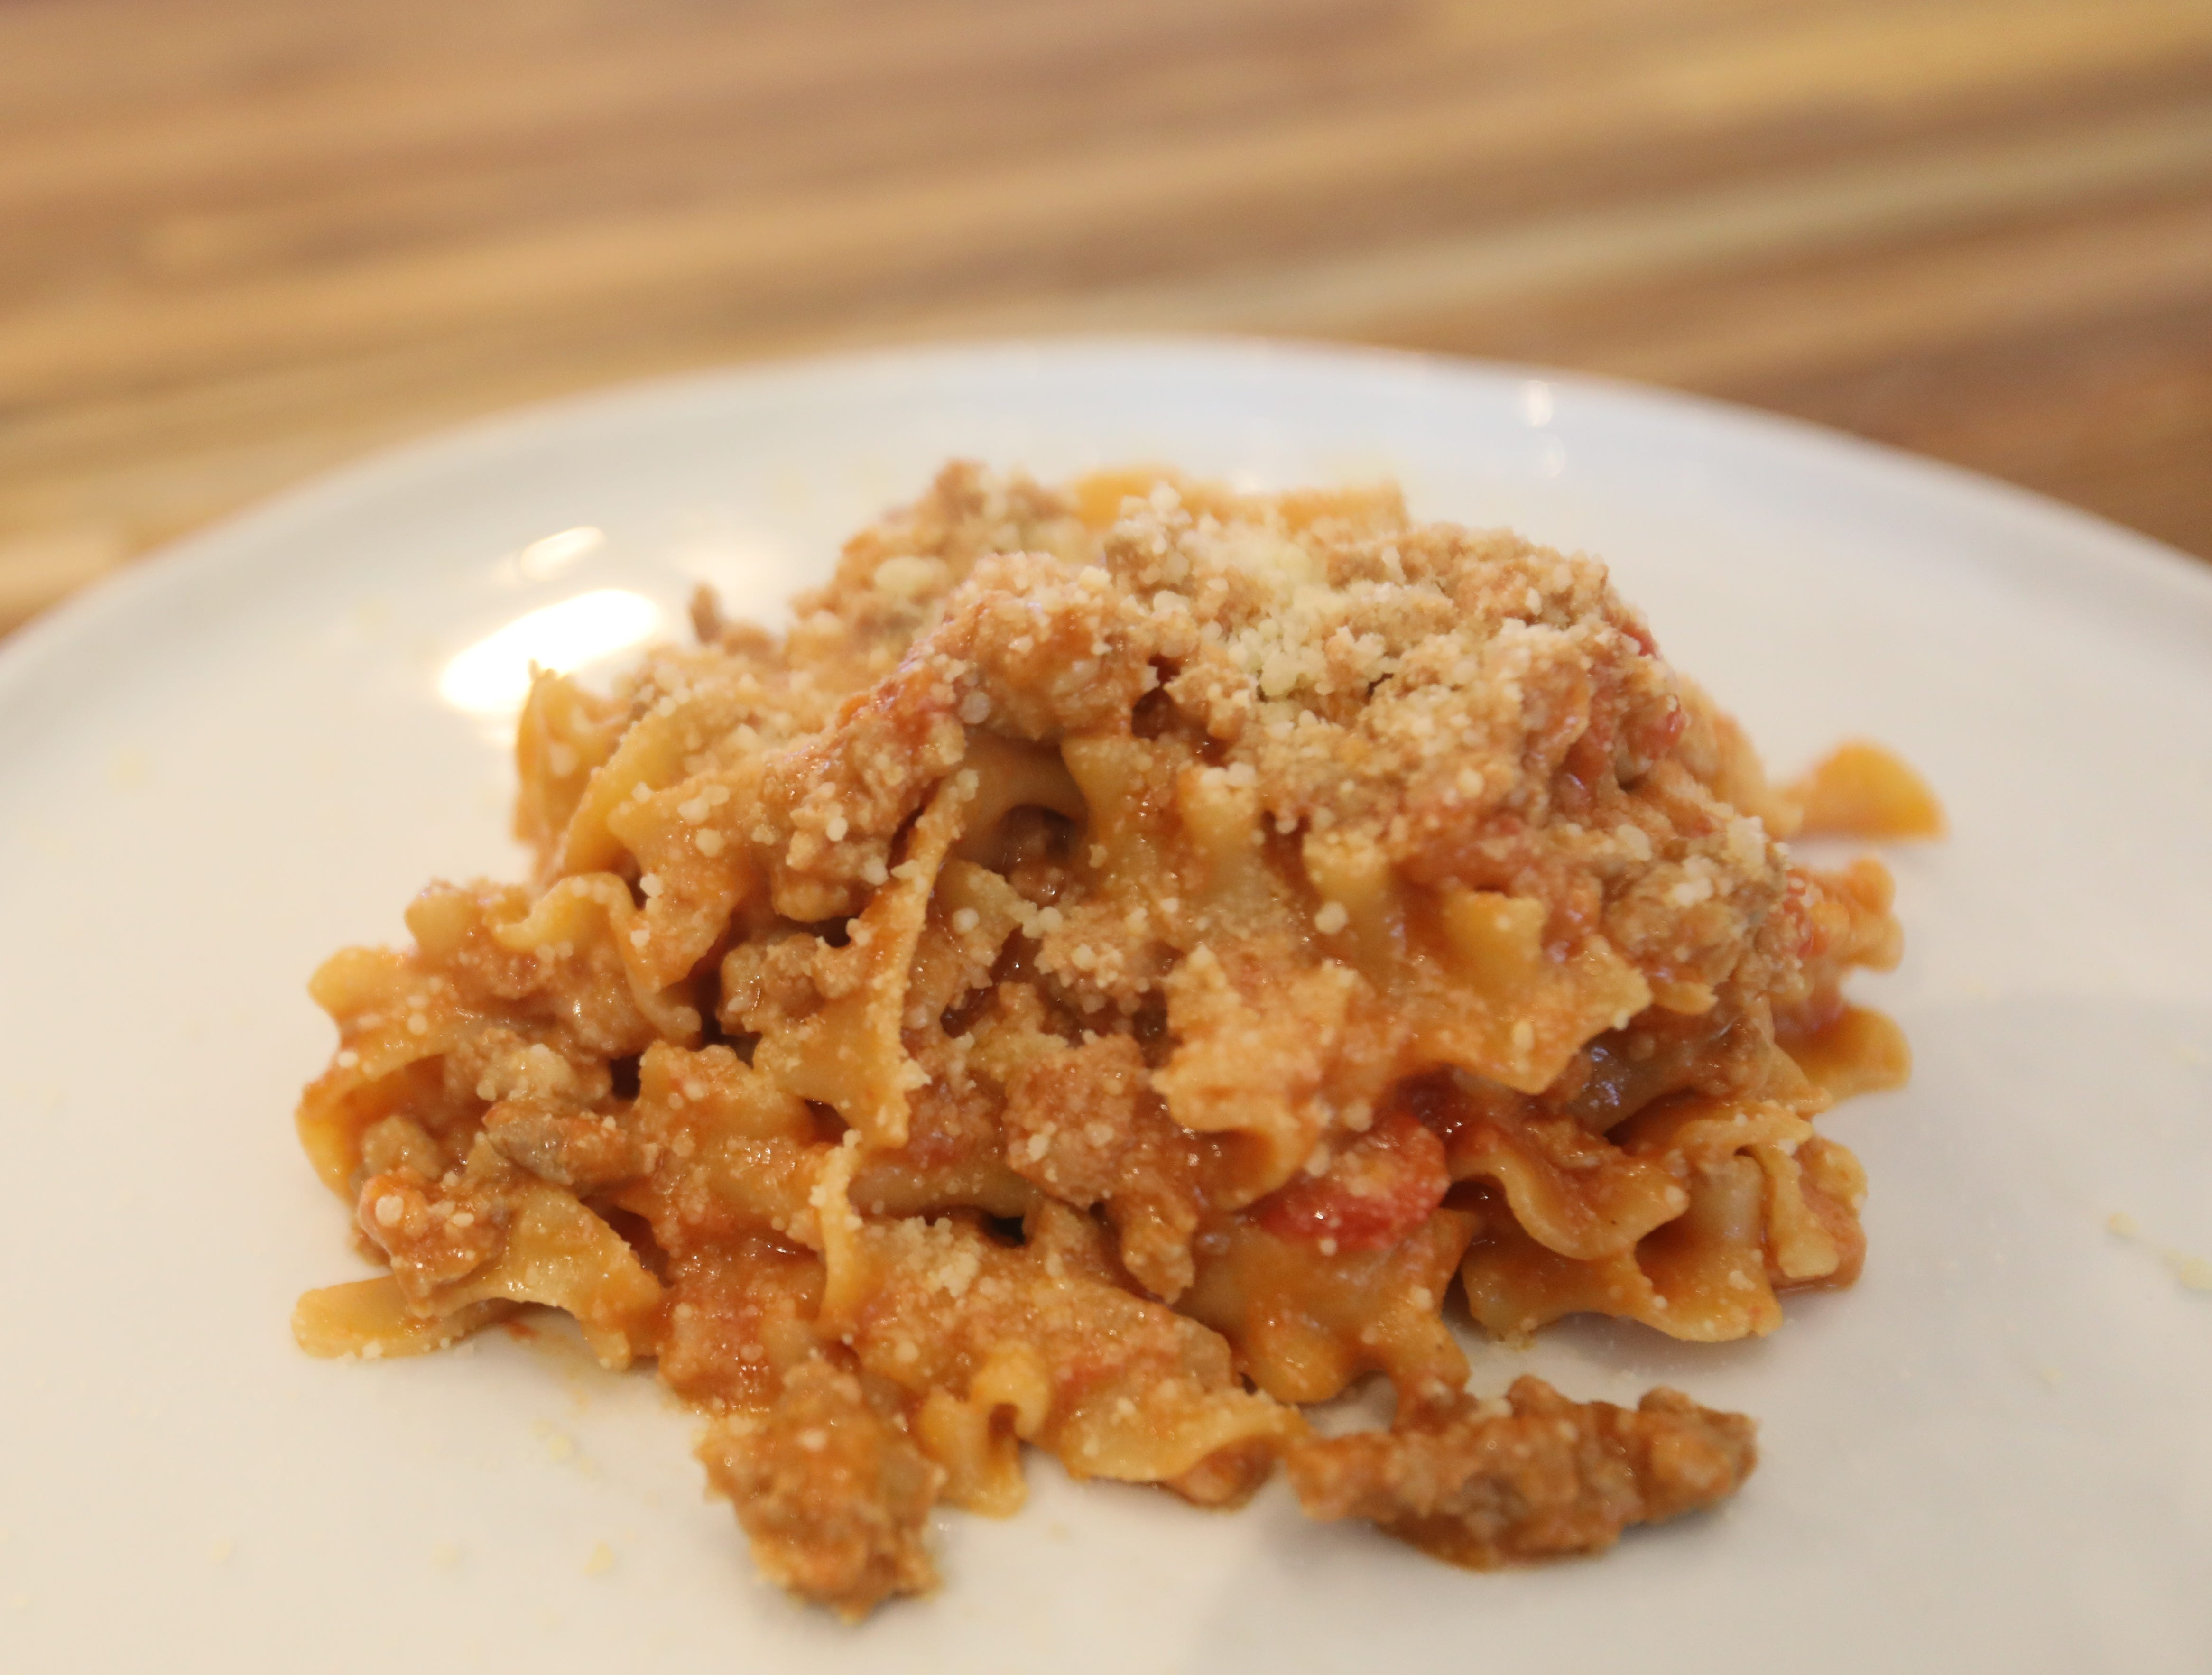 Tripoline is a dish made at DPNB Pasta & Provisions in Nyack on Jan. 31, 2019.